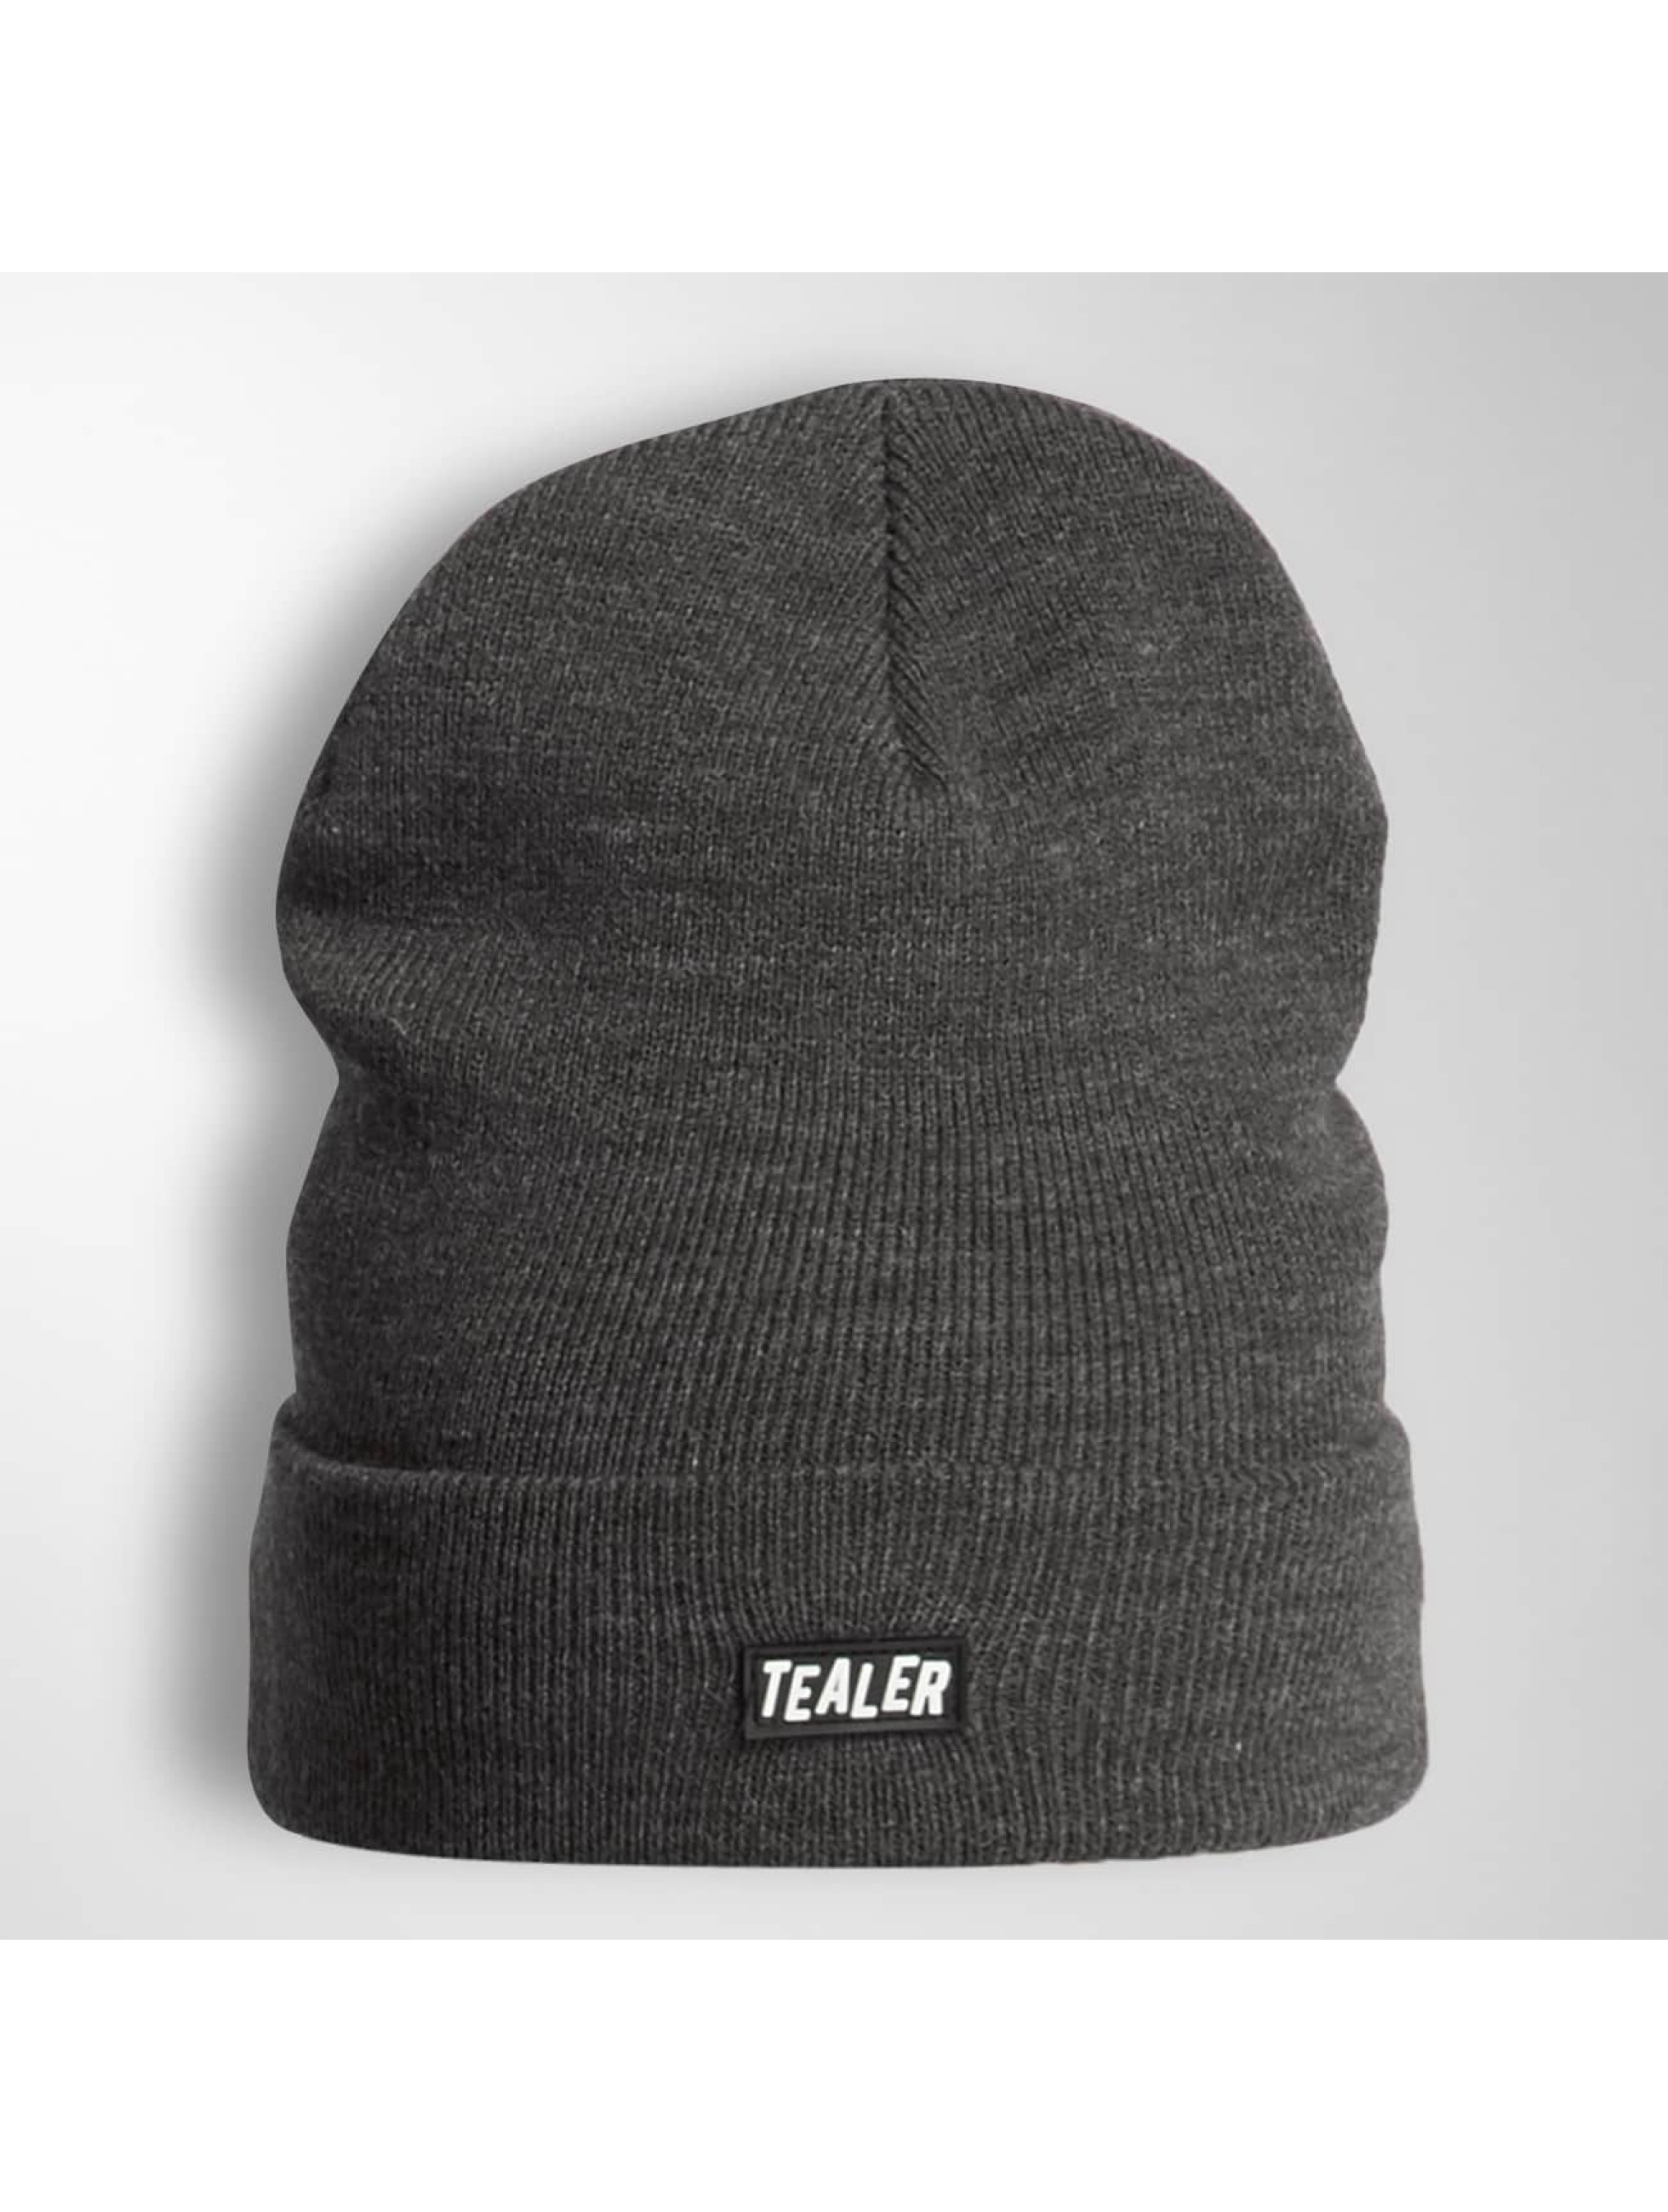 Tealer Hat-1 PVC Patch gray